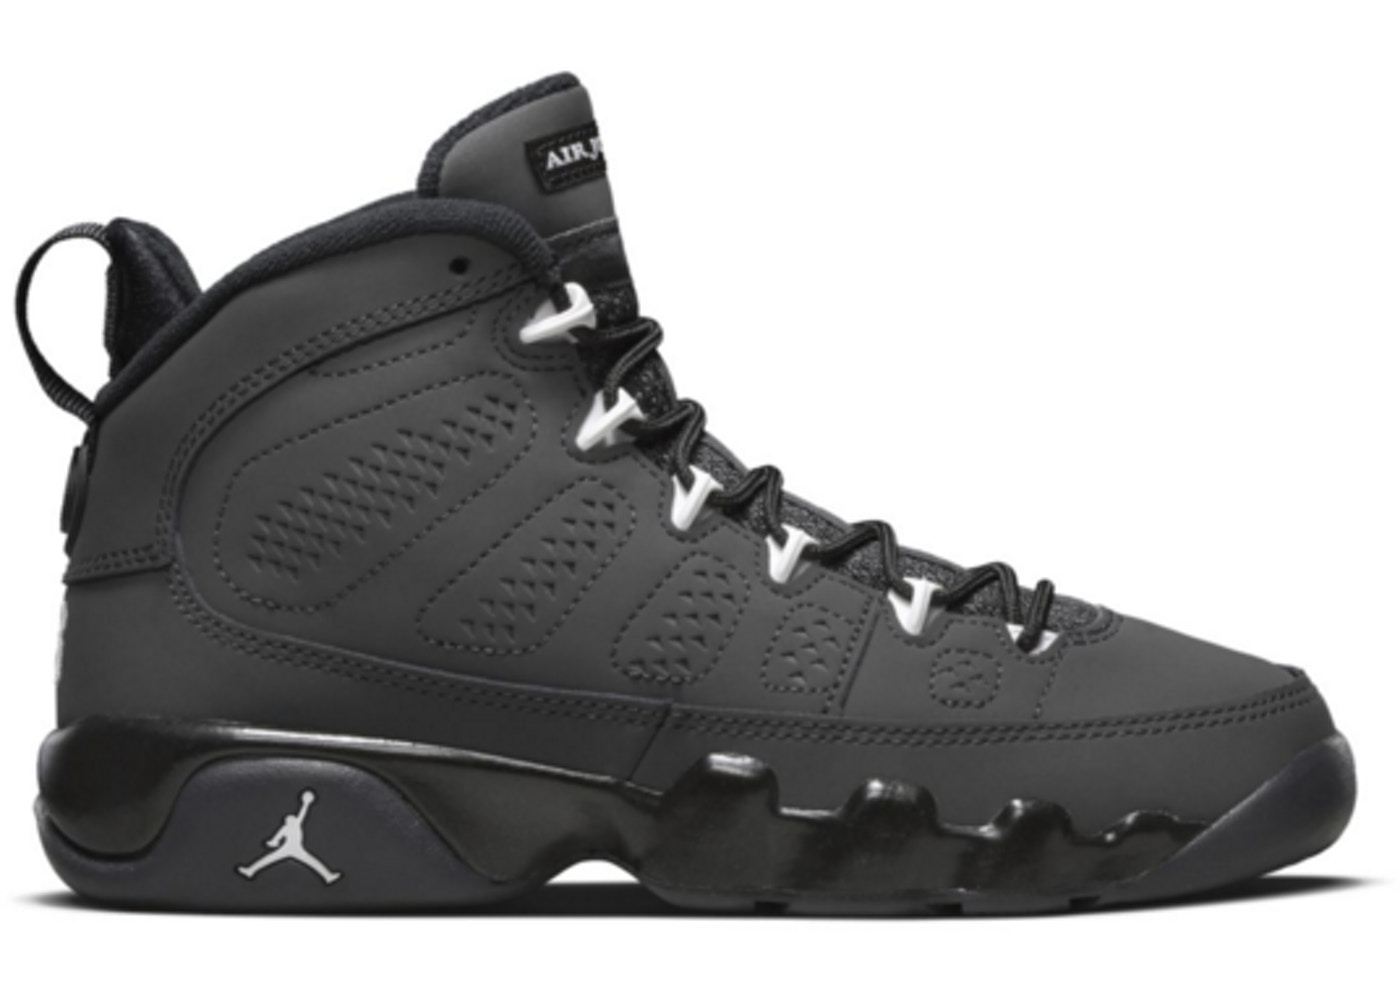 b1bcbeda8686 Buy Air Jordan 9 Shoes   Deadstock Sneakers